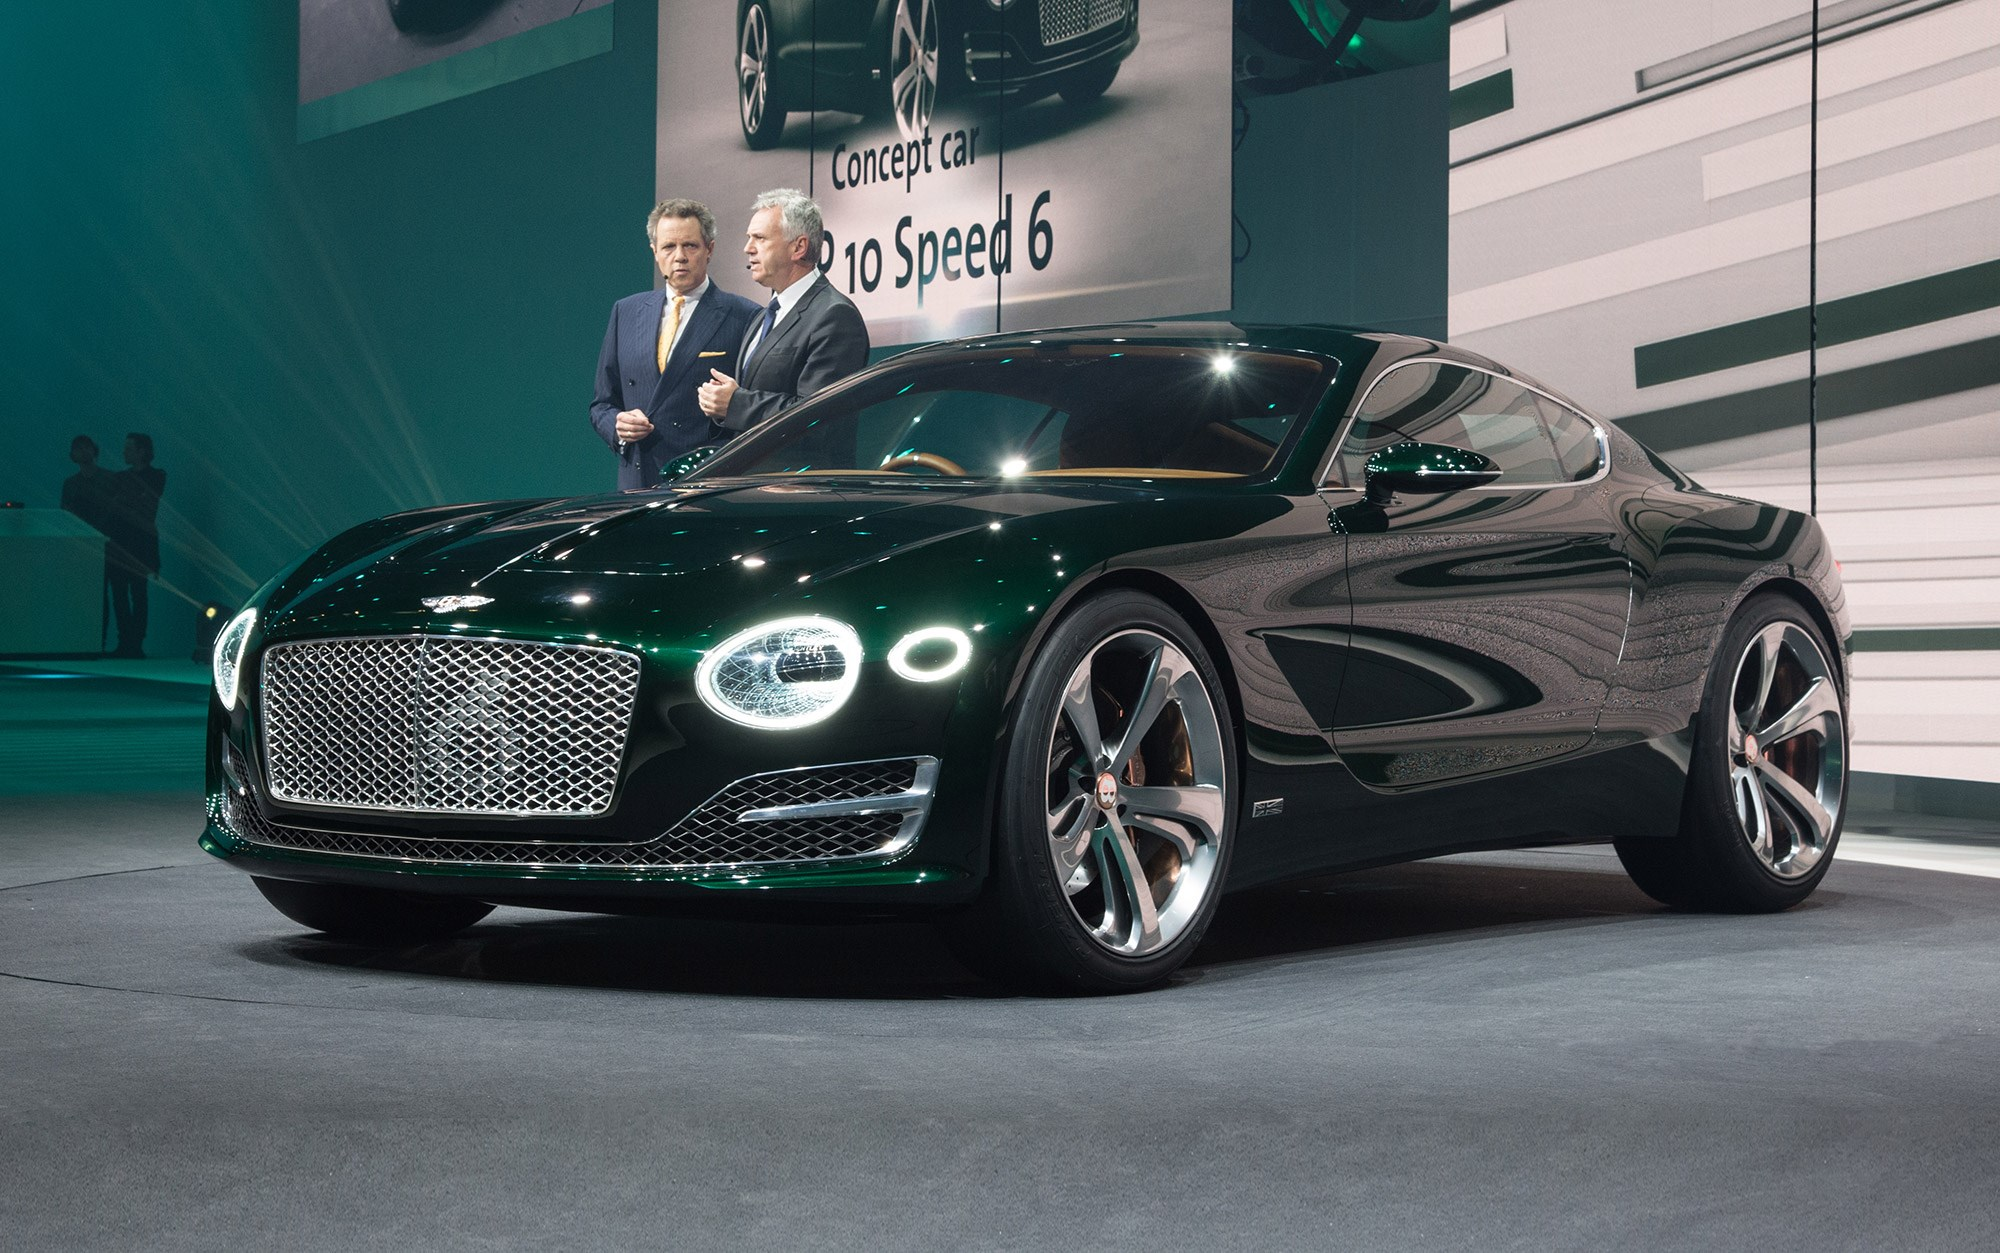 Bentley Exp 10 Sd 6 Points To New Two Seat Sports Car